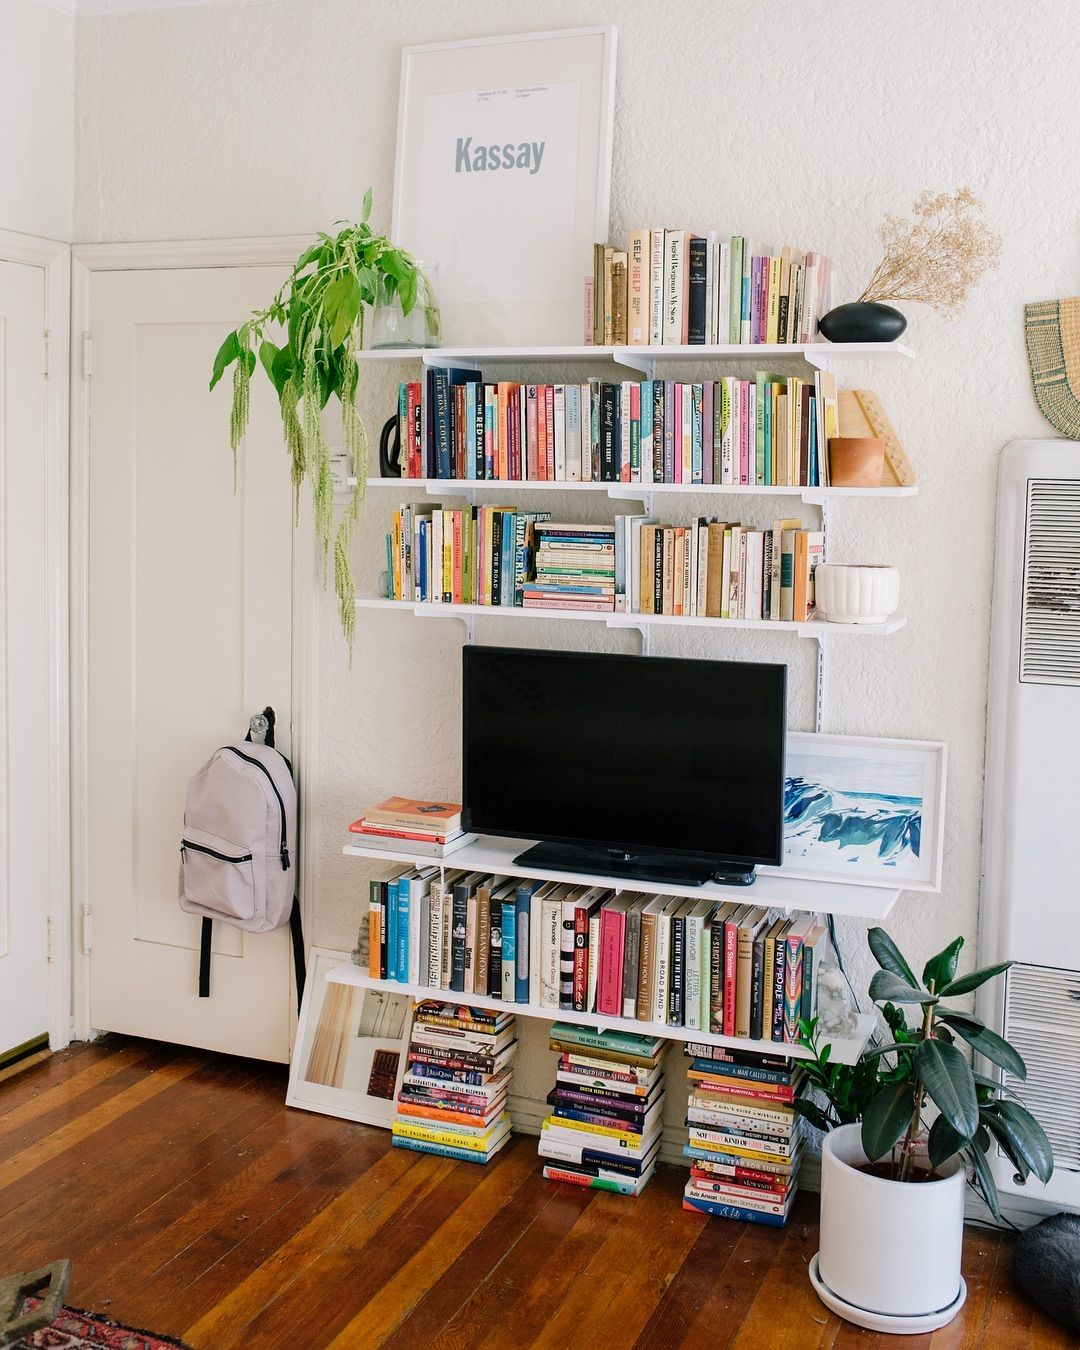 Domino On Instagram This 500 Square Foot La Apartment Has Mastered The Art Of Storage As Display A Prime Example This Smart Shelving Unit Tap The Link In